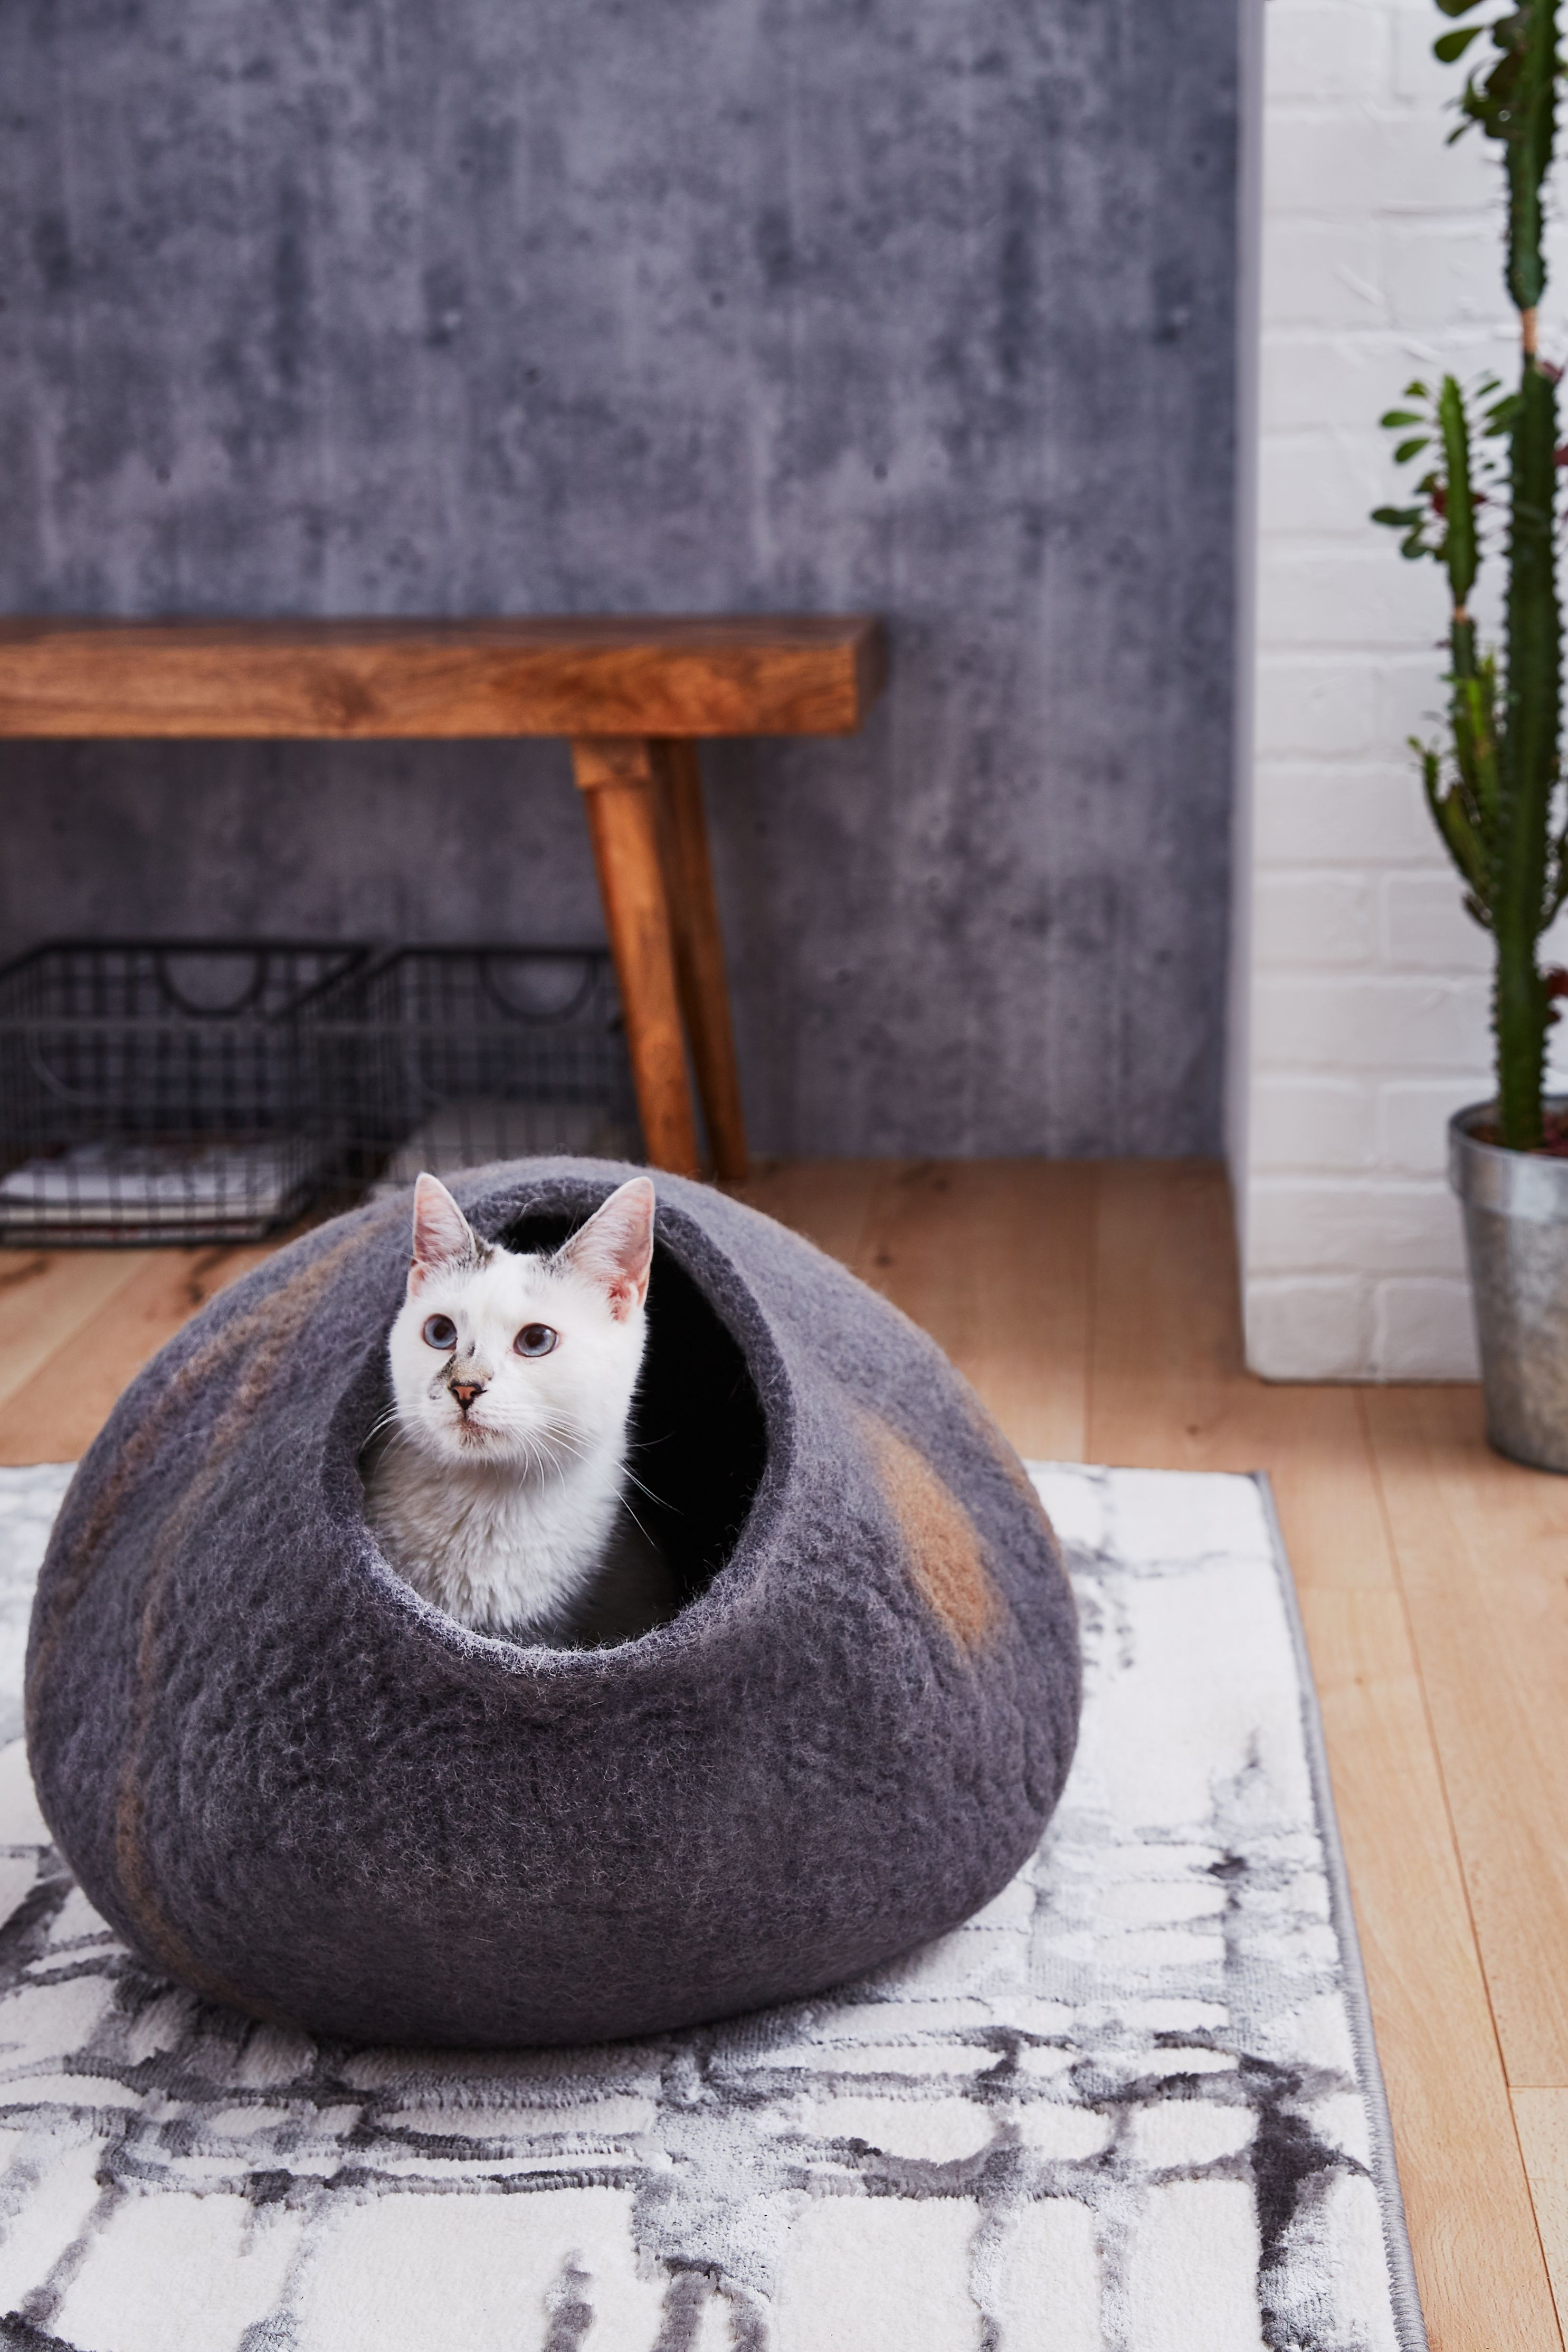 Give your cat the gift of comfort with the Meowfia Premium